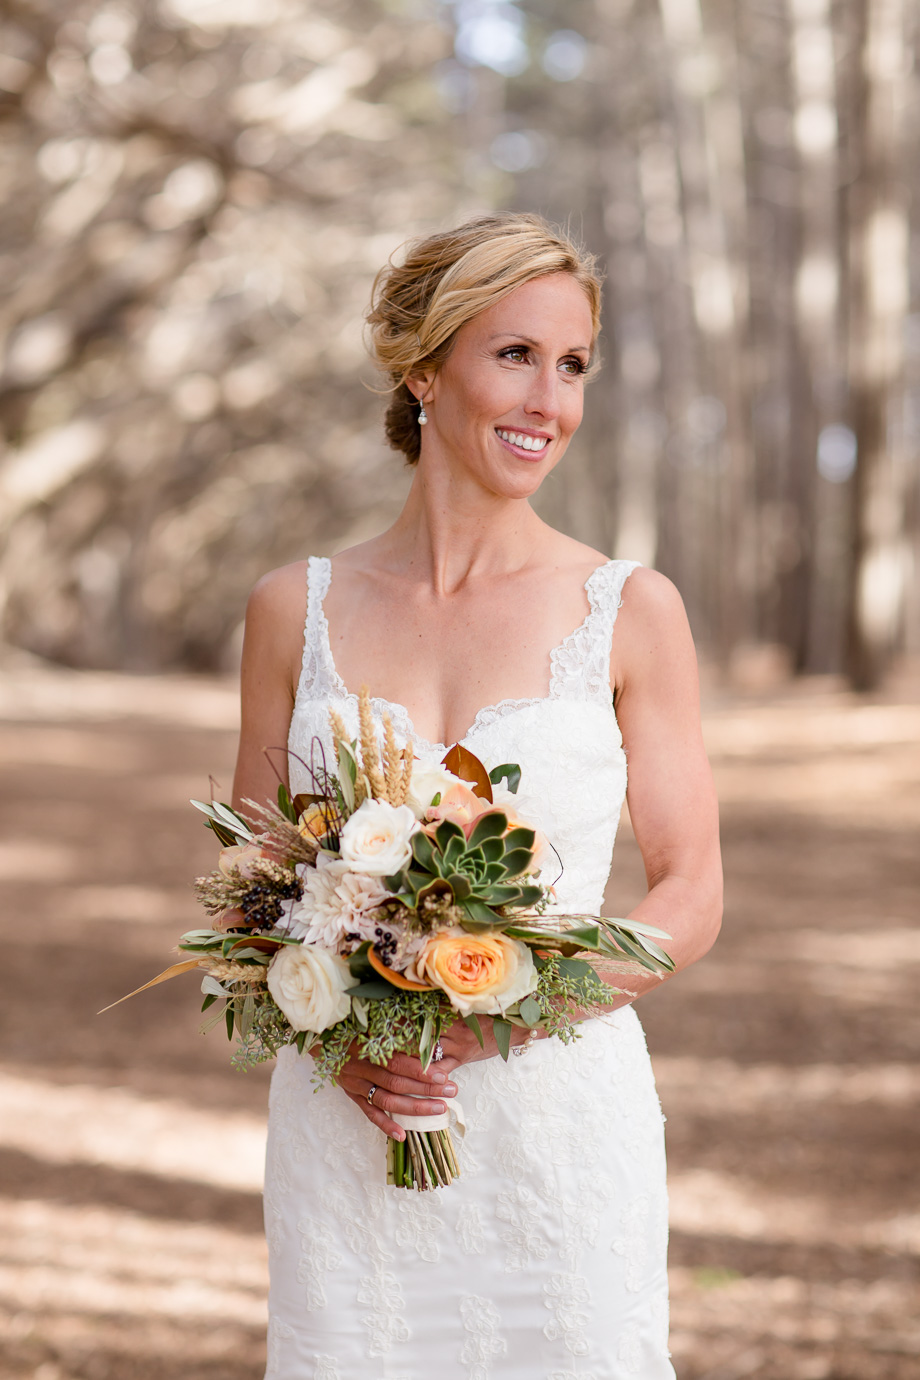 gorgeous bride with an elegant lace wedding gown and a succulent bouquet in a magical forest - Half Moon Bay wedding photographer